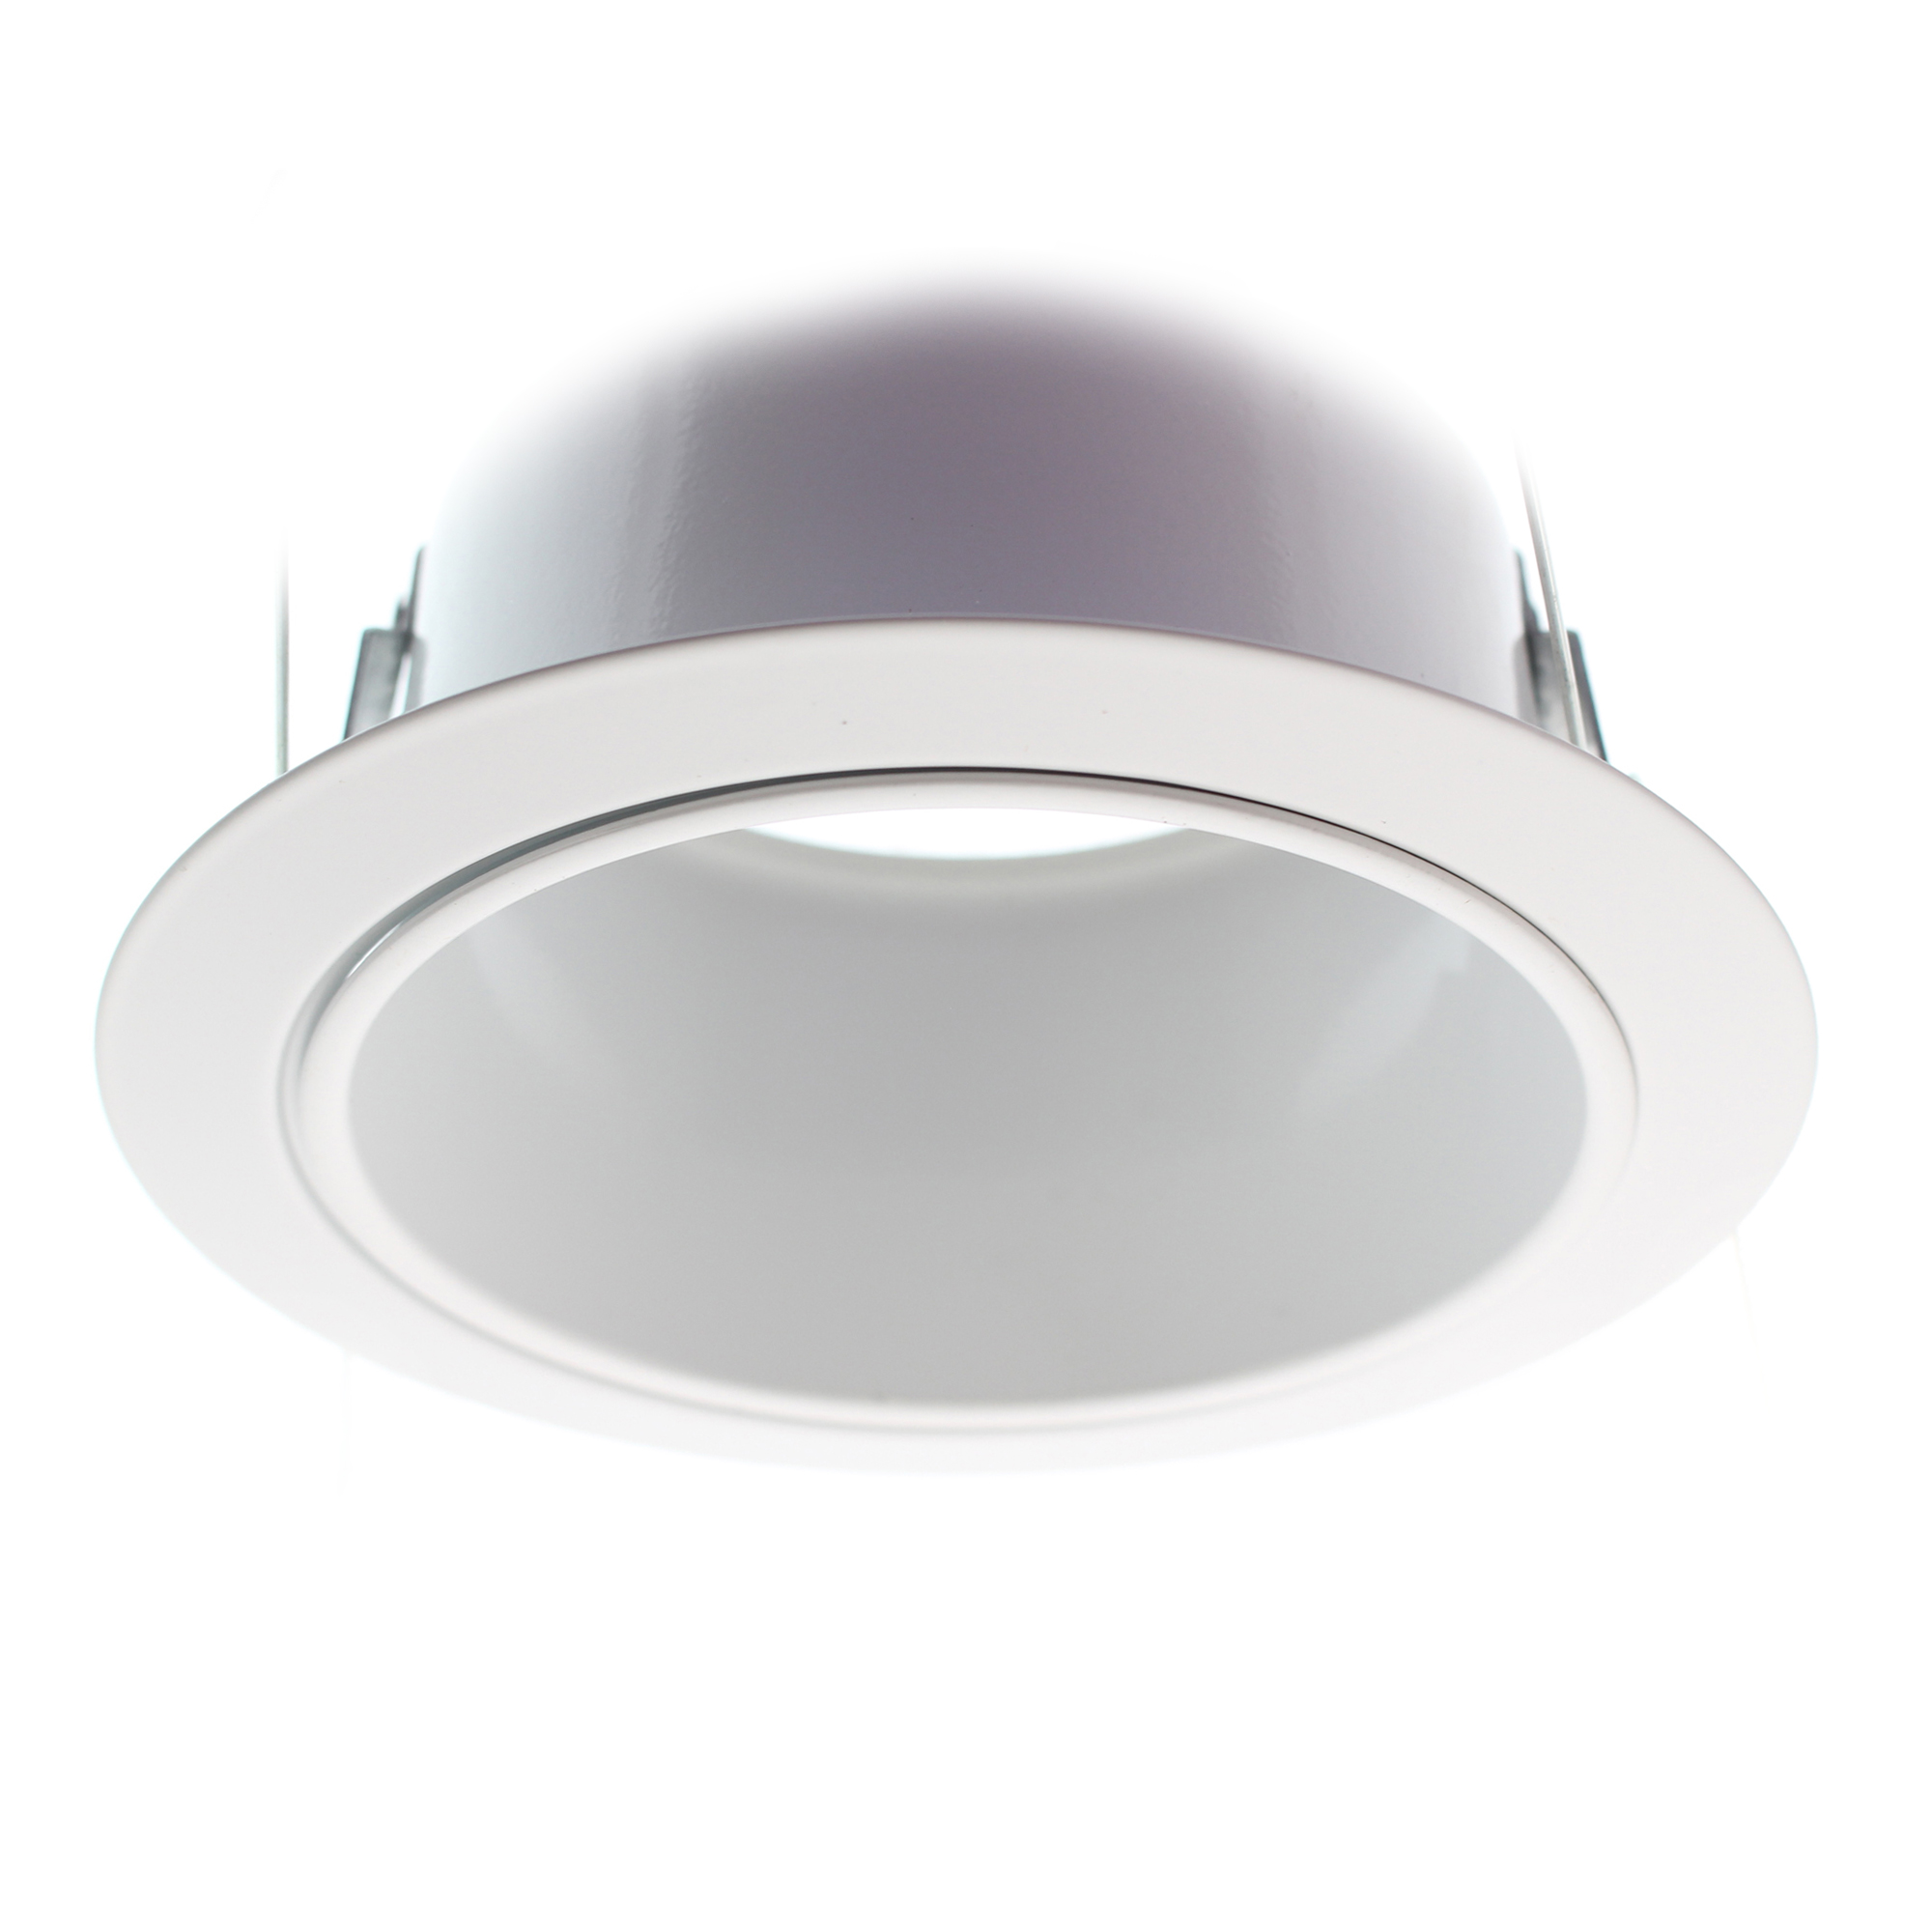 Details About Elco Lighting Els530kw Recessed Specular Reflector Trim 5 Inch White